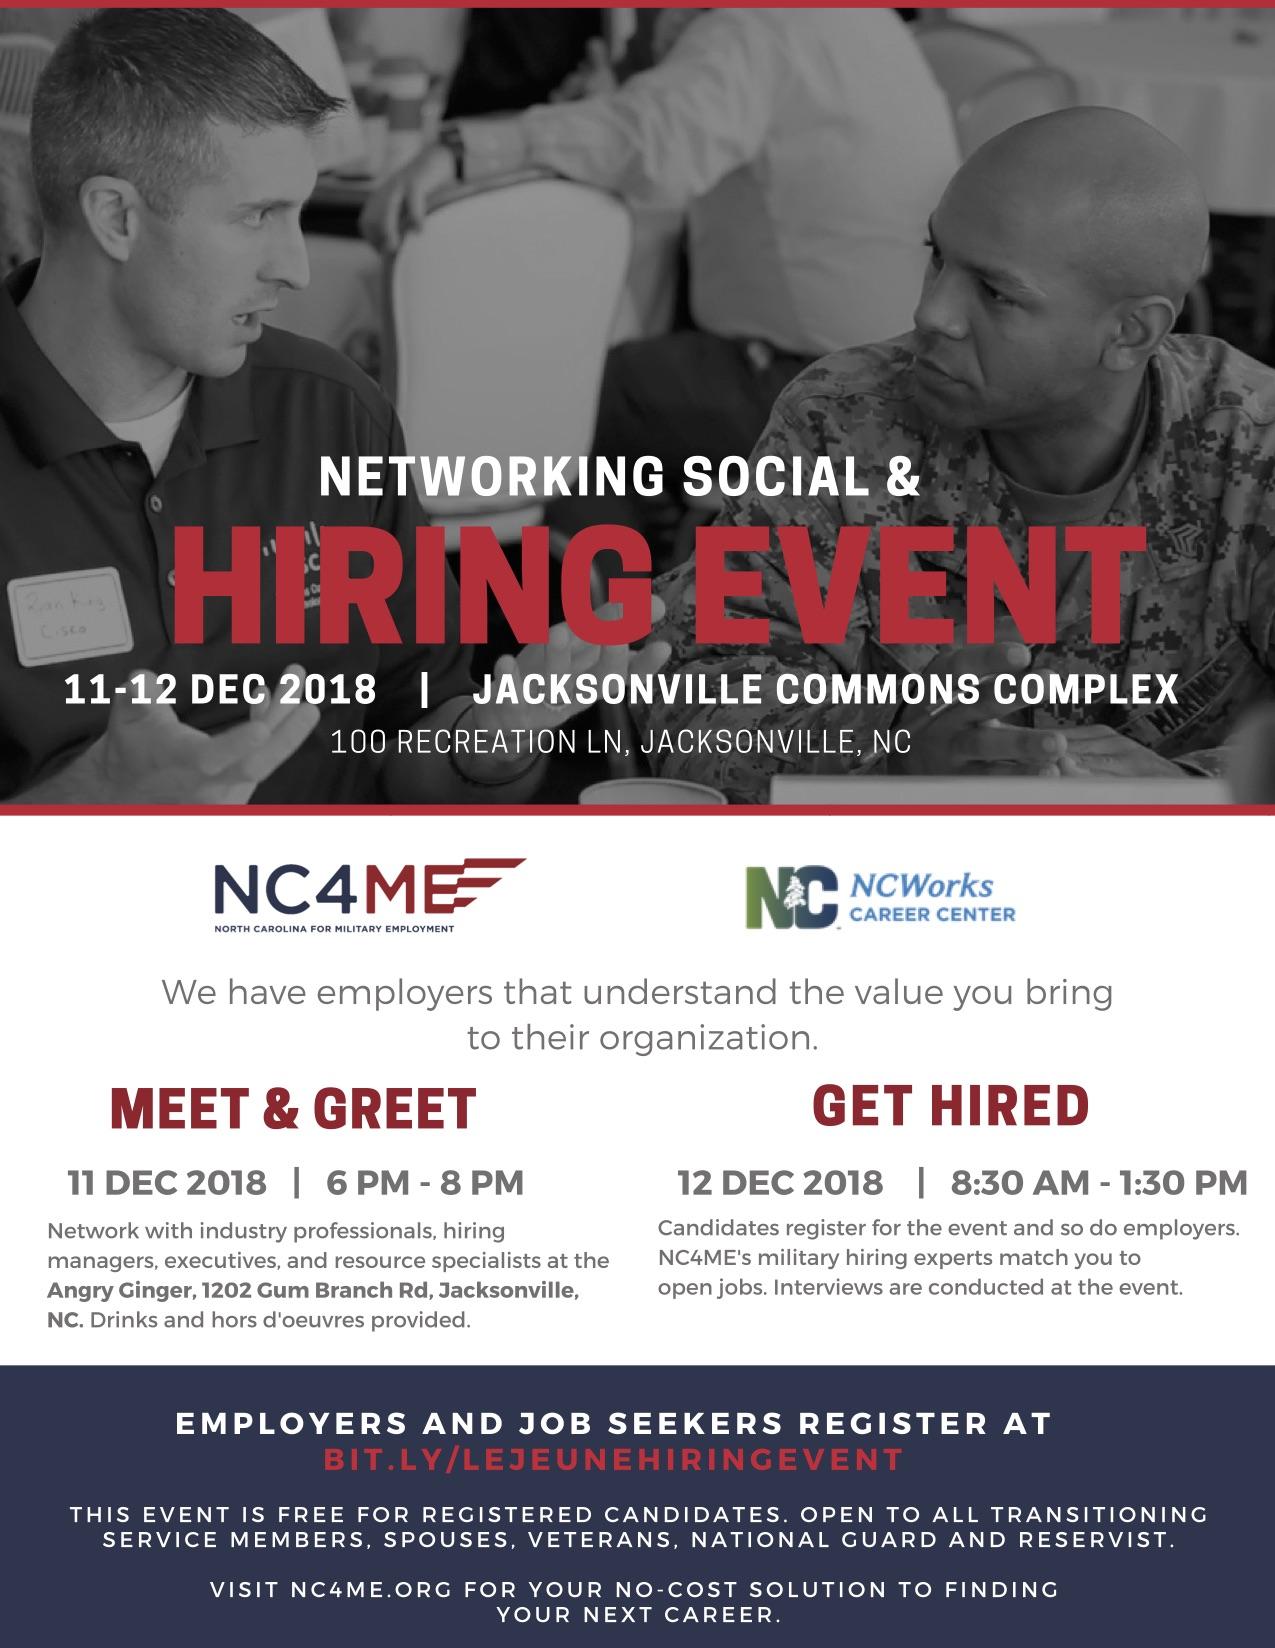 NC4ME Hiring Event - Day 1 @ Angry Ginger